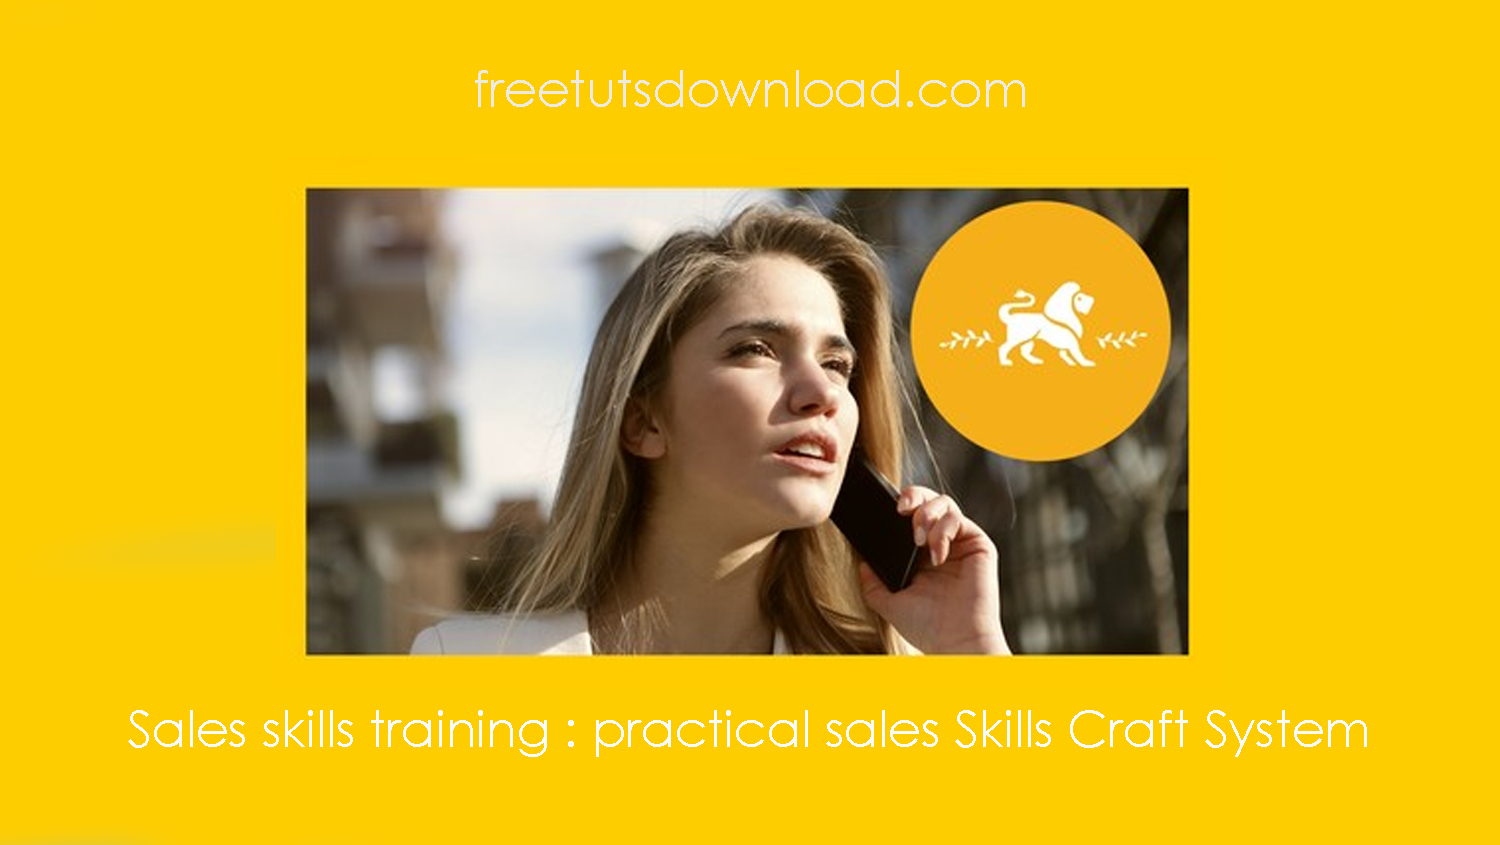 Sales skills training : practical sales Skills Craft System free download